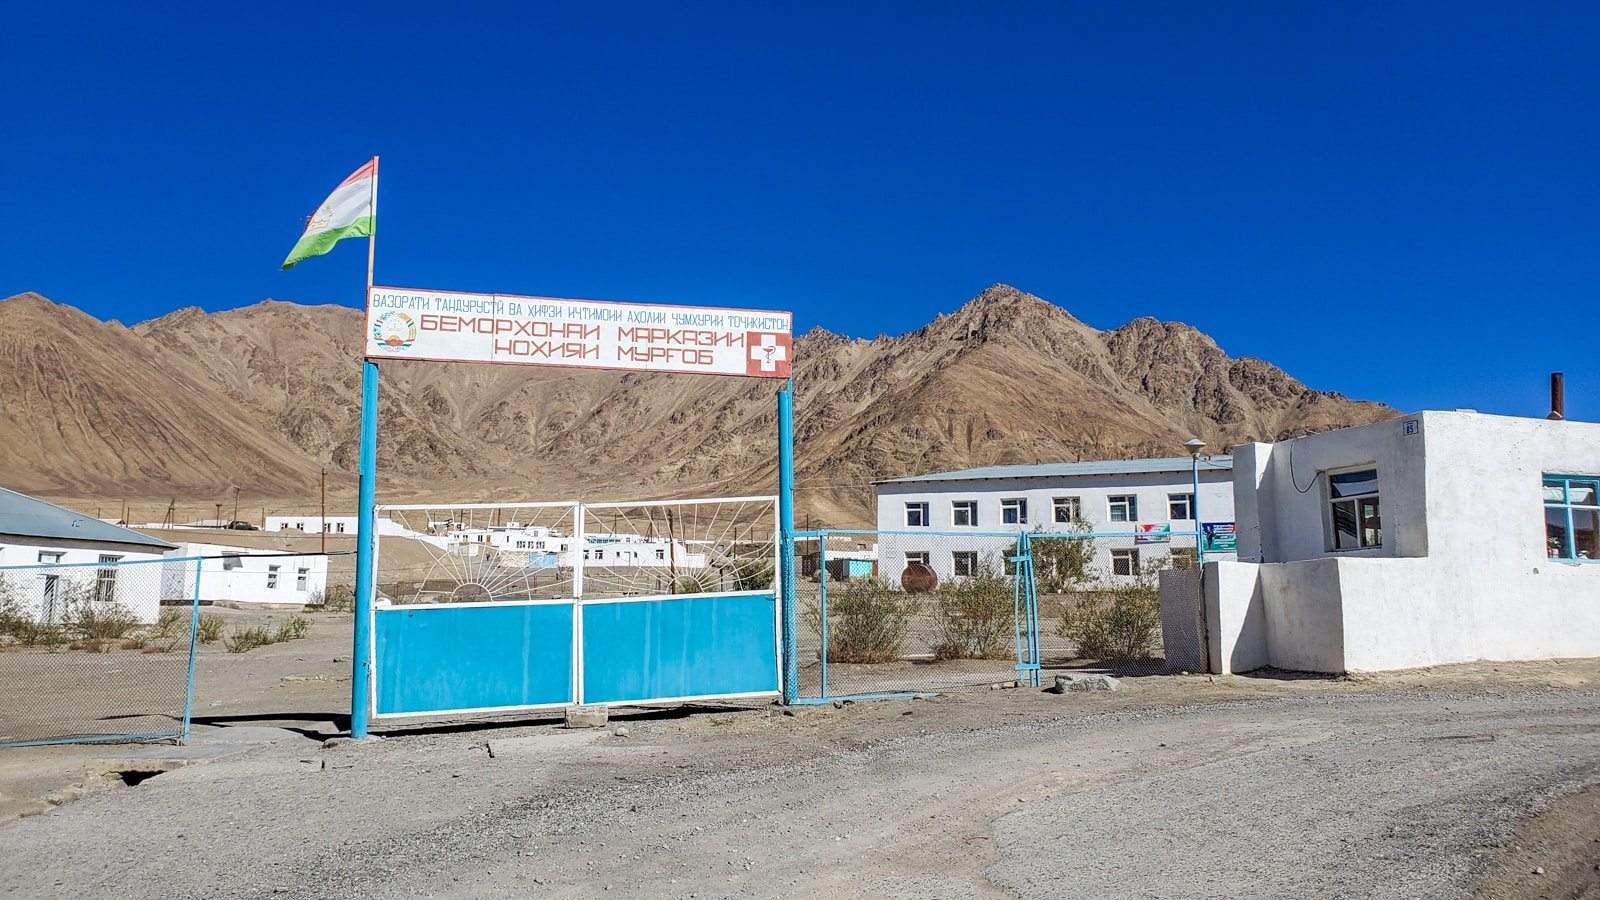 Exterior of Murghab hospital, Pamir Mountains, Tajikistan